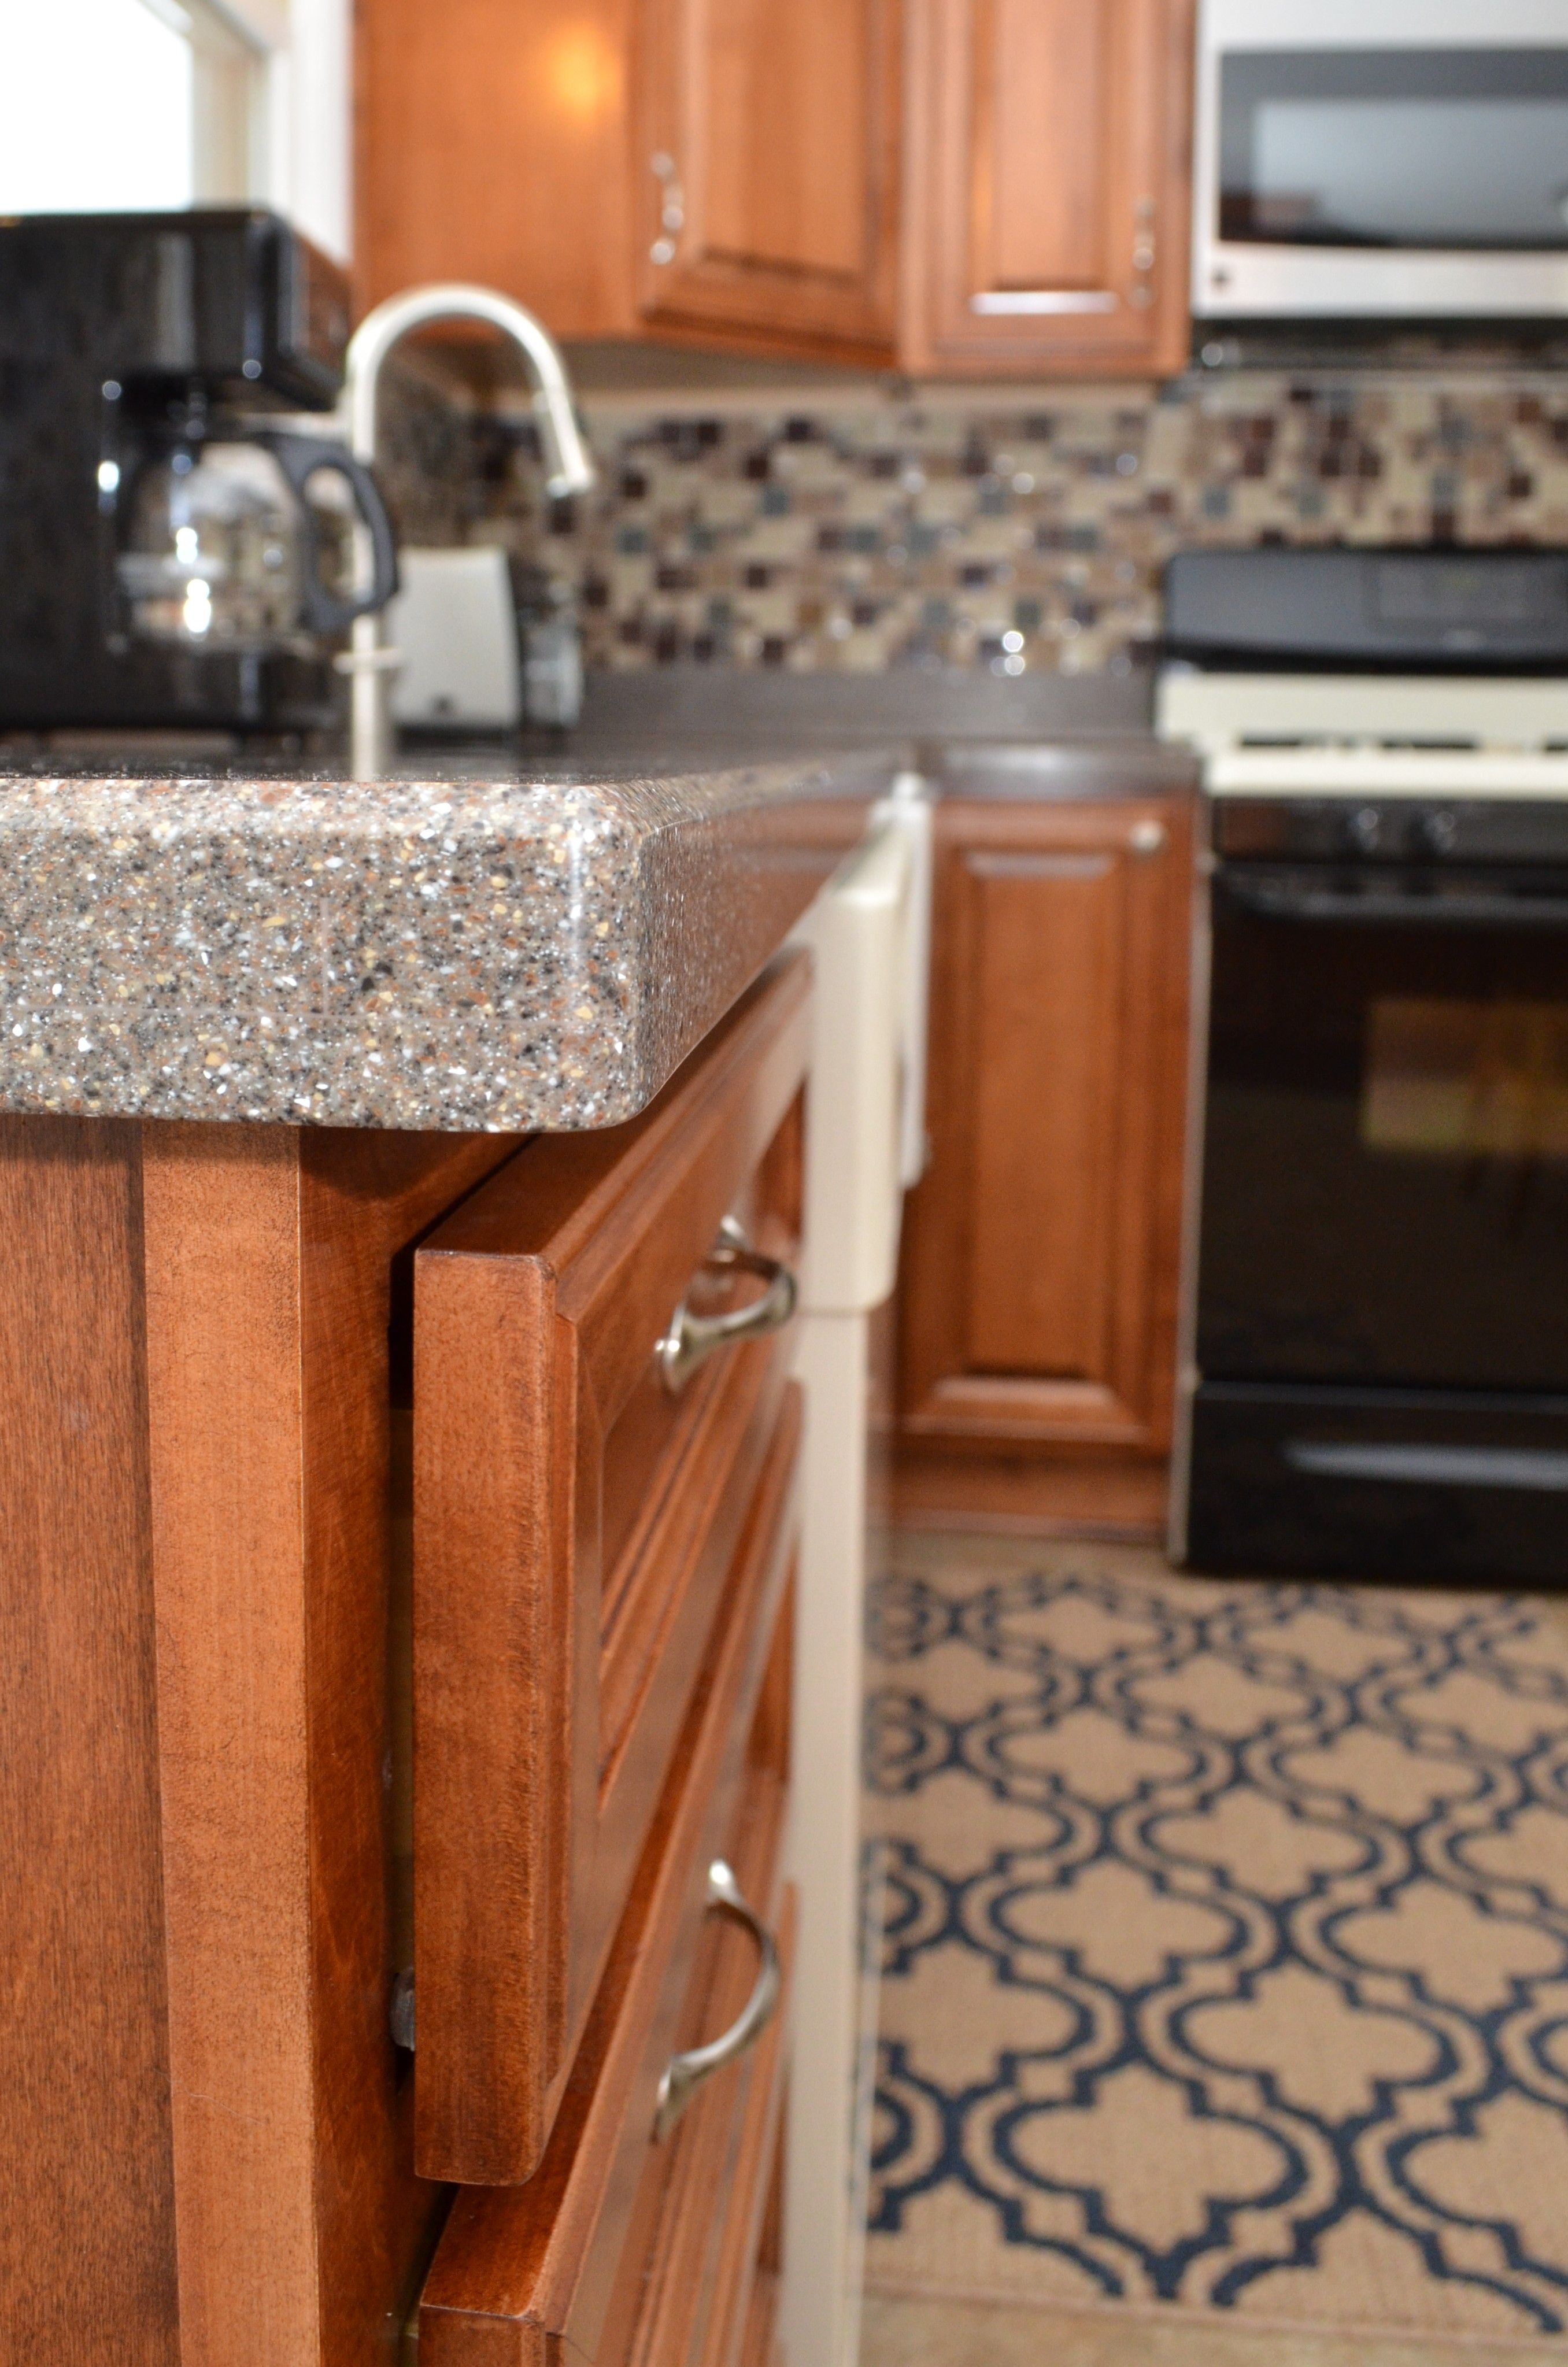 Corian Solid Surface Countertop Bevel Edge Detail Coved